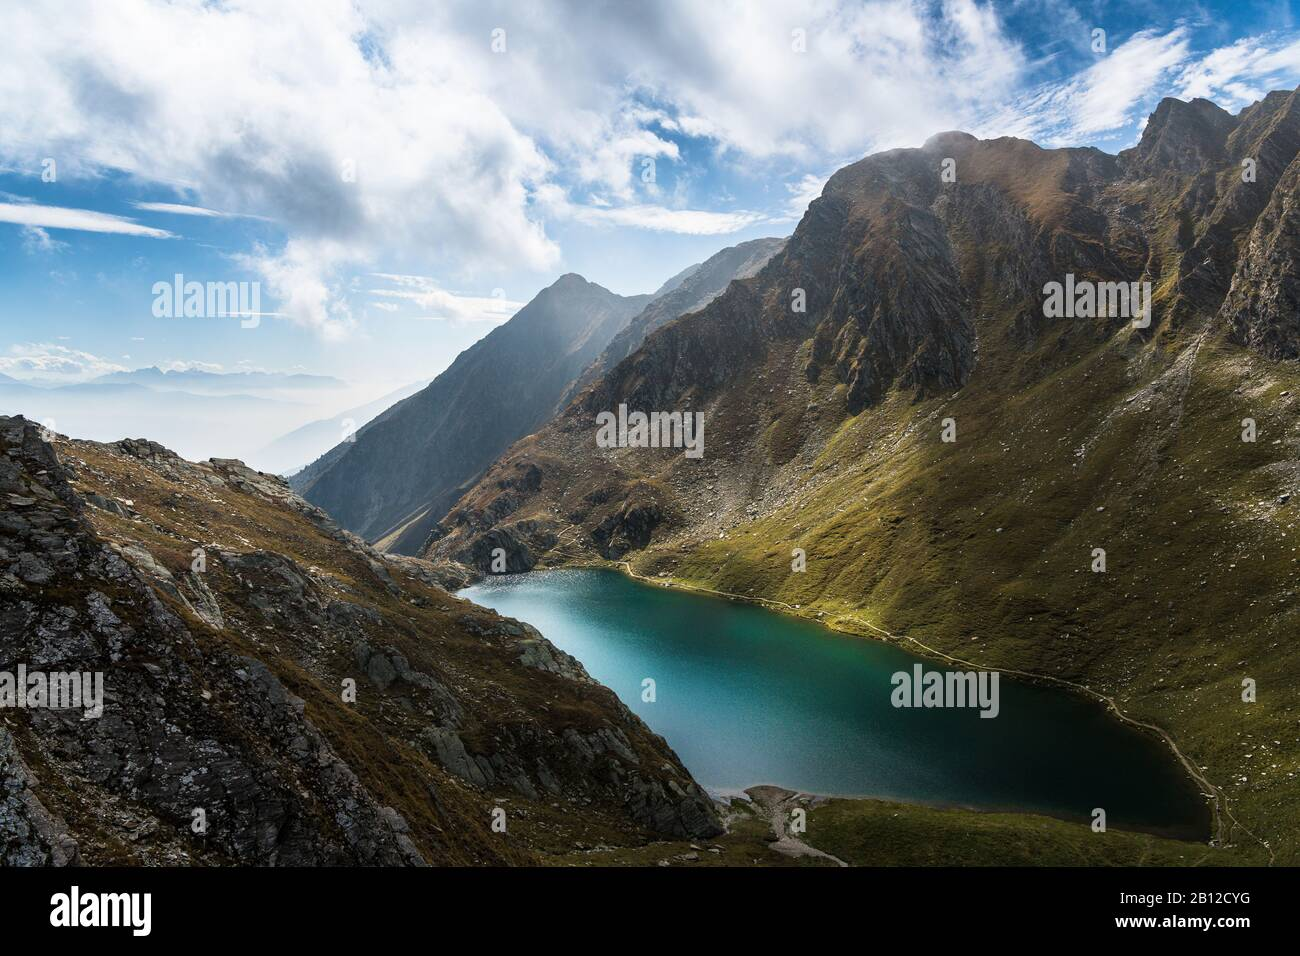 Hike to Seefeldspitze, view to Seefeldsee, Valser Tal, Pfunderer Berge, South Tyrol, Italy Stock Photo